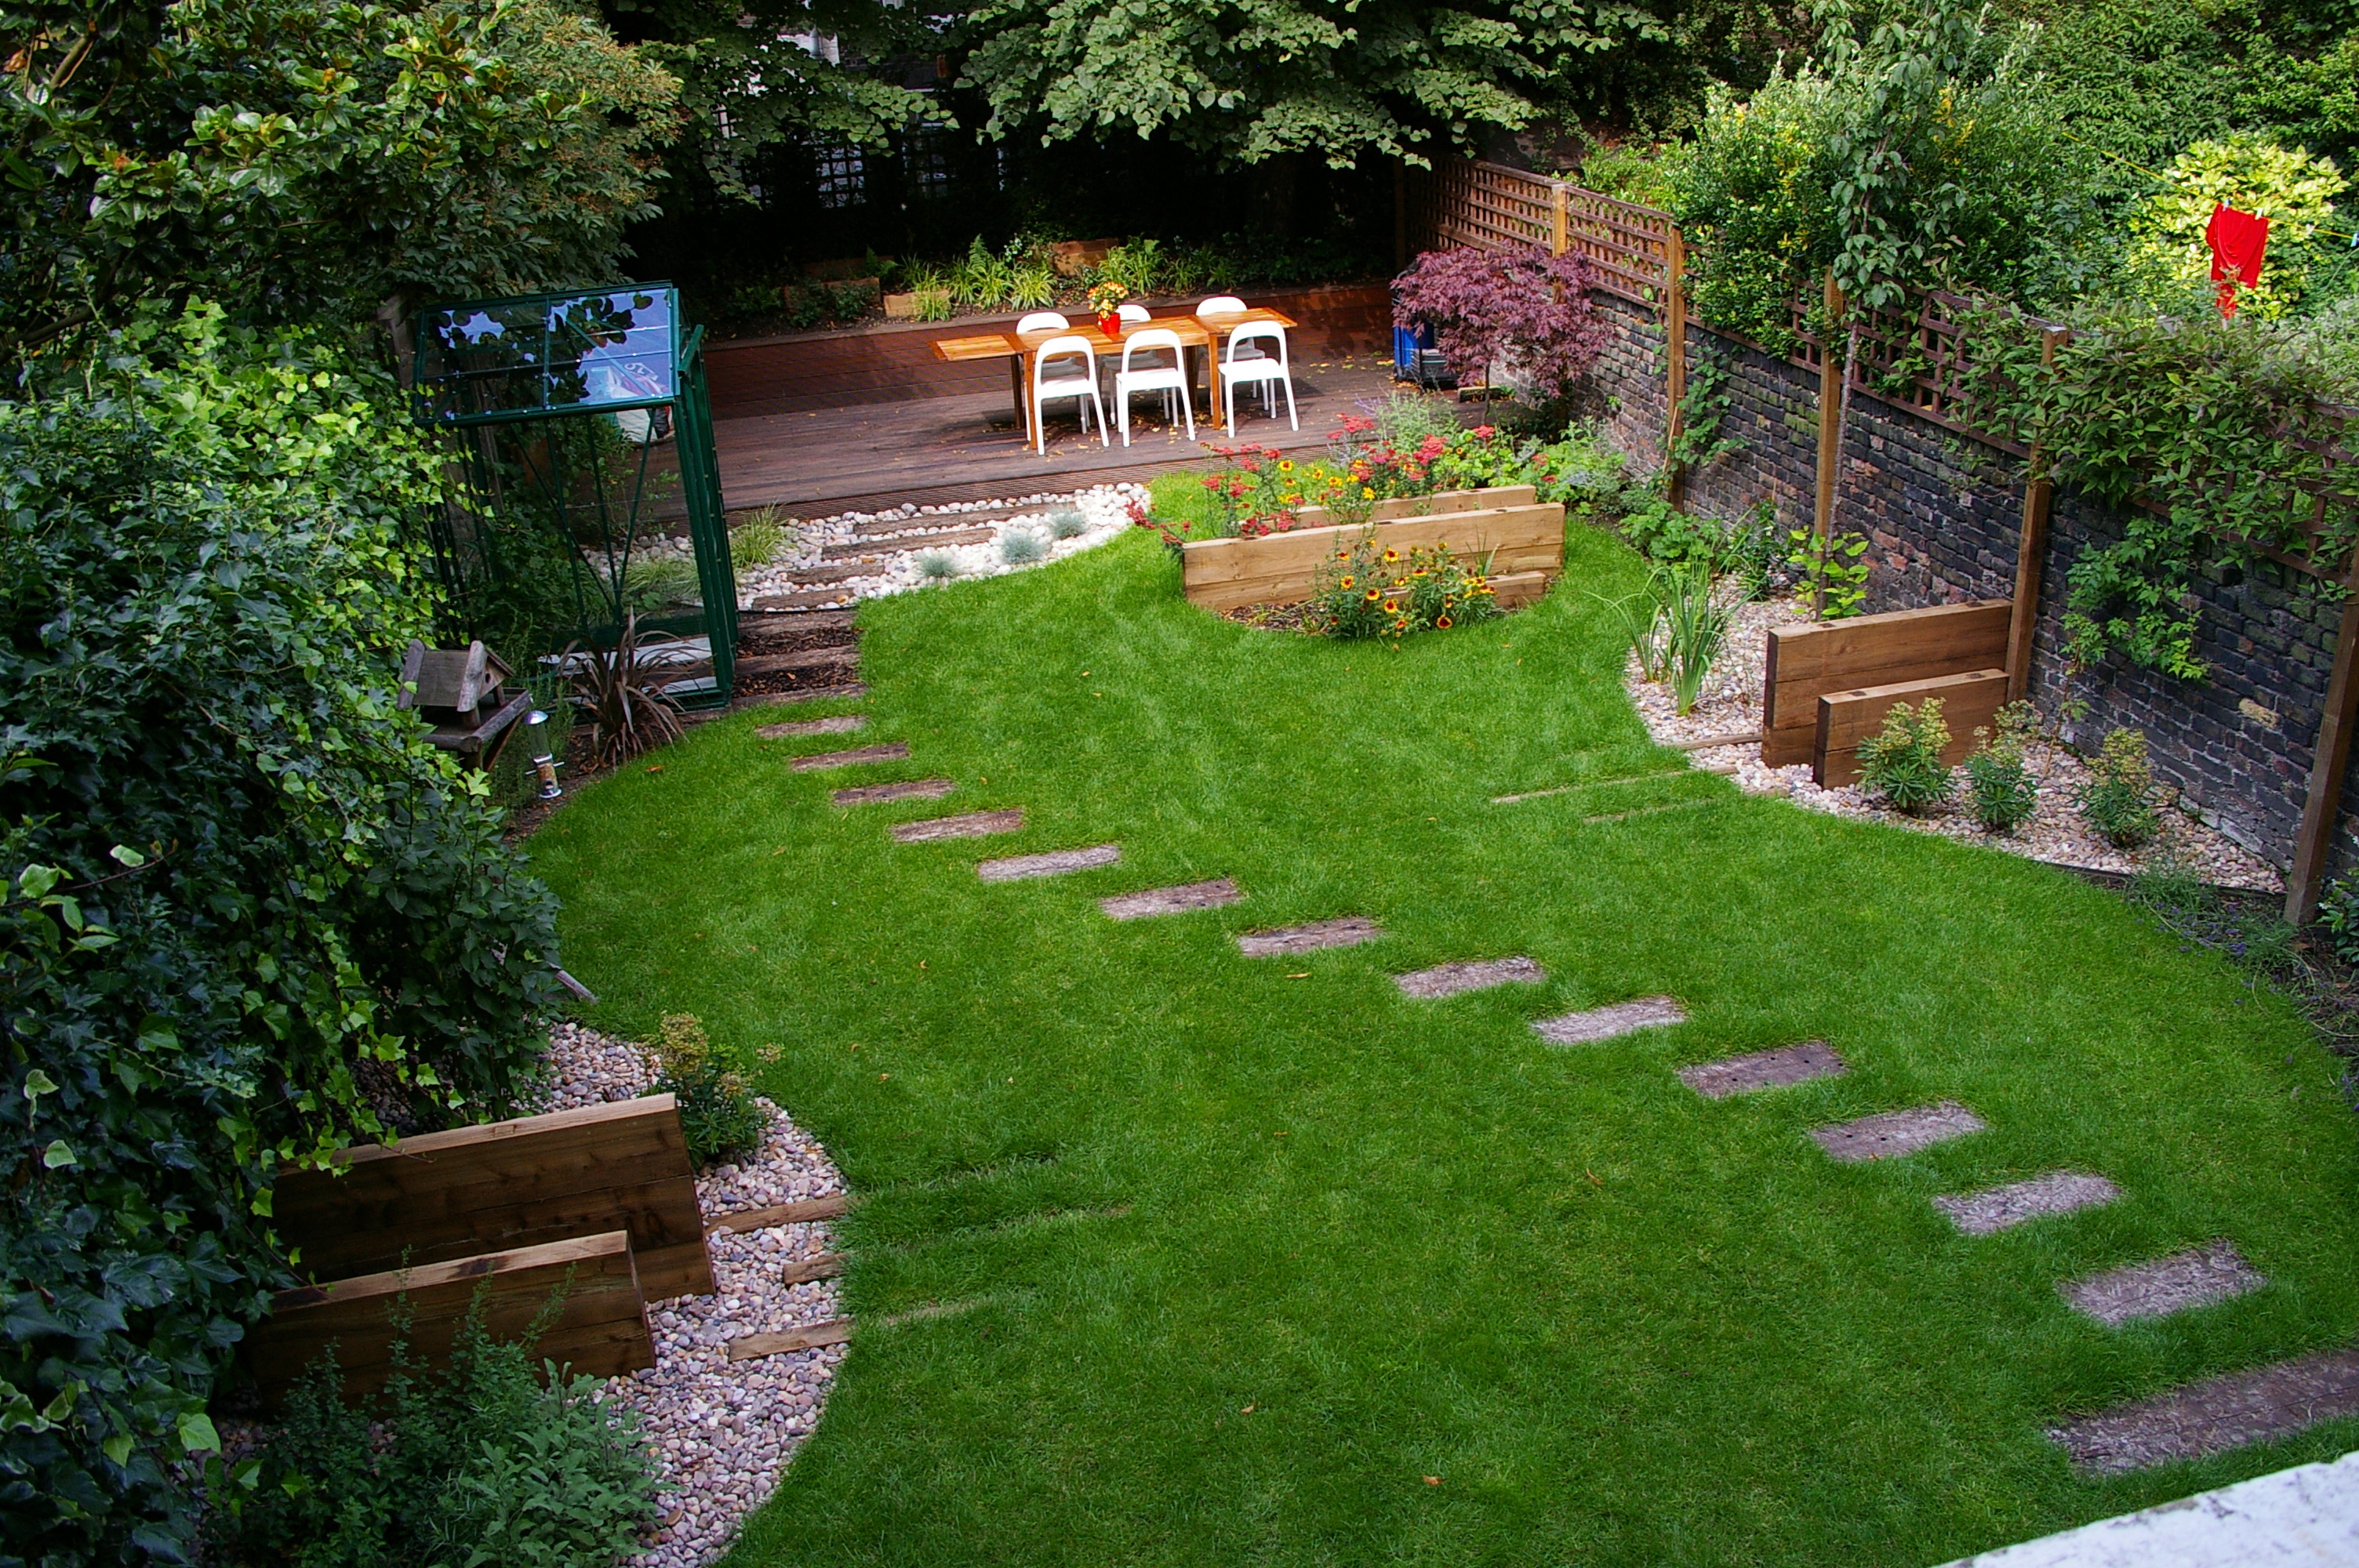 Landscape Design Ideas For Small Backyards Credible Home Decor inside Landscape Ideas For Backyards With Pictures